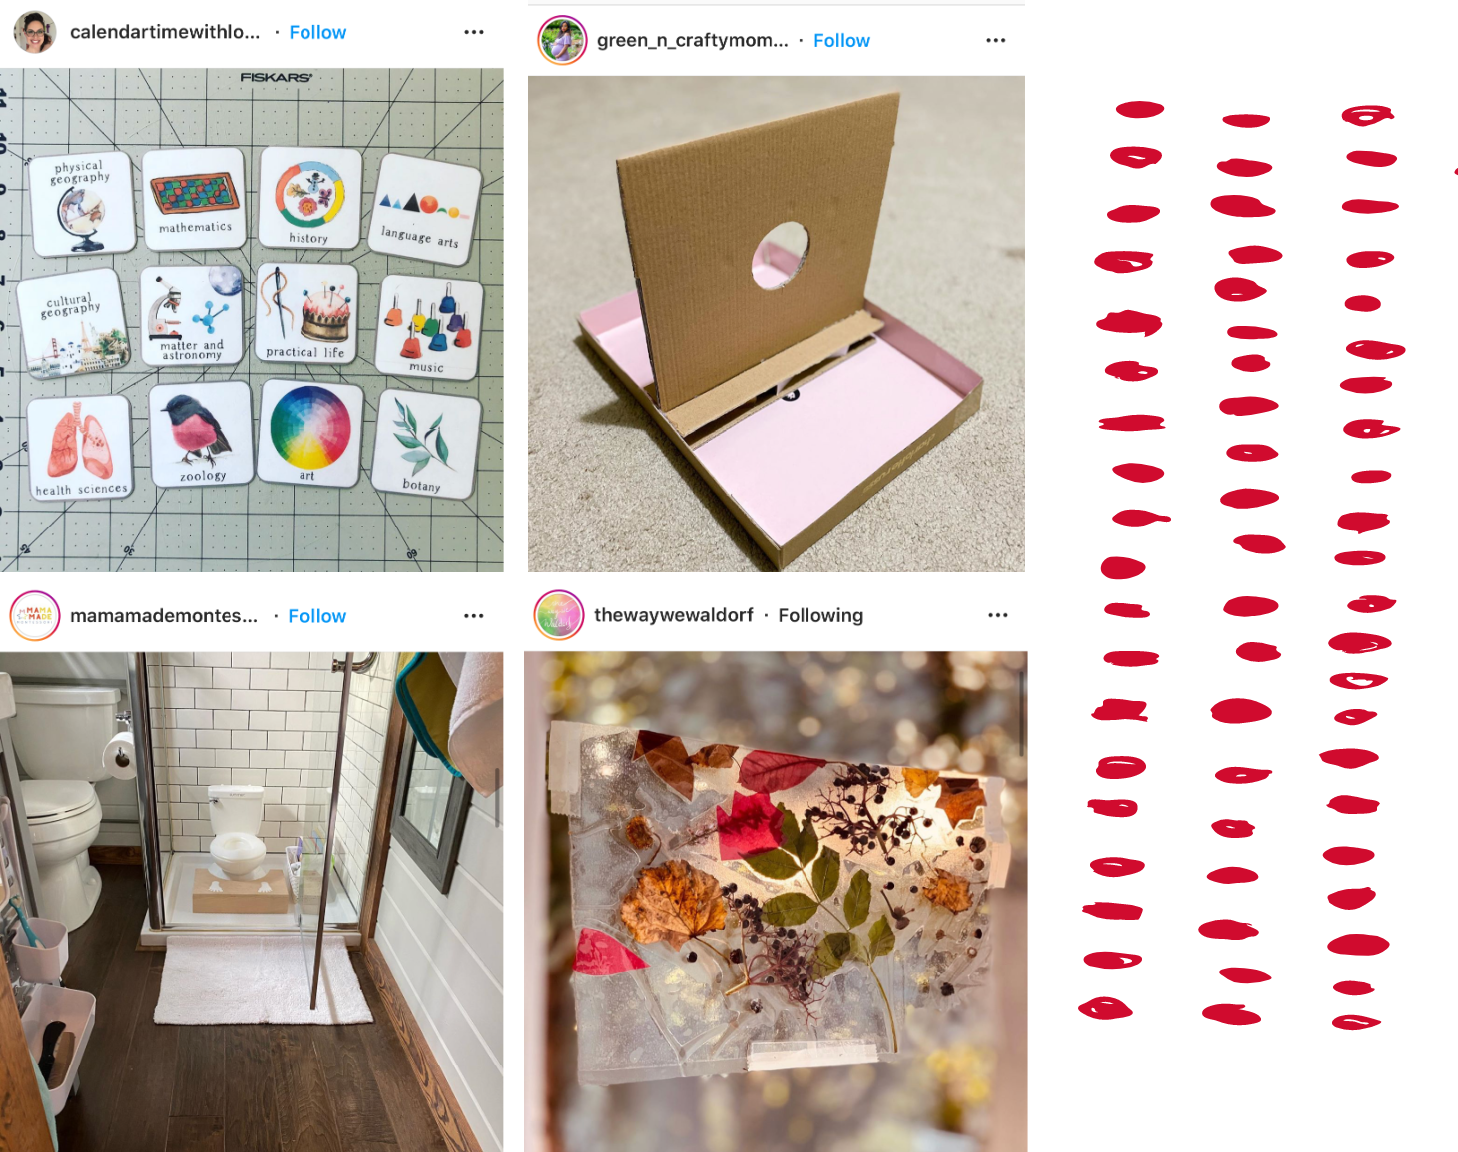 Montessori spaces, ideas, and activity inspiration from Instagram.